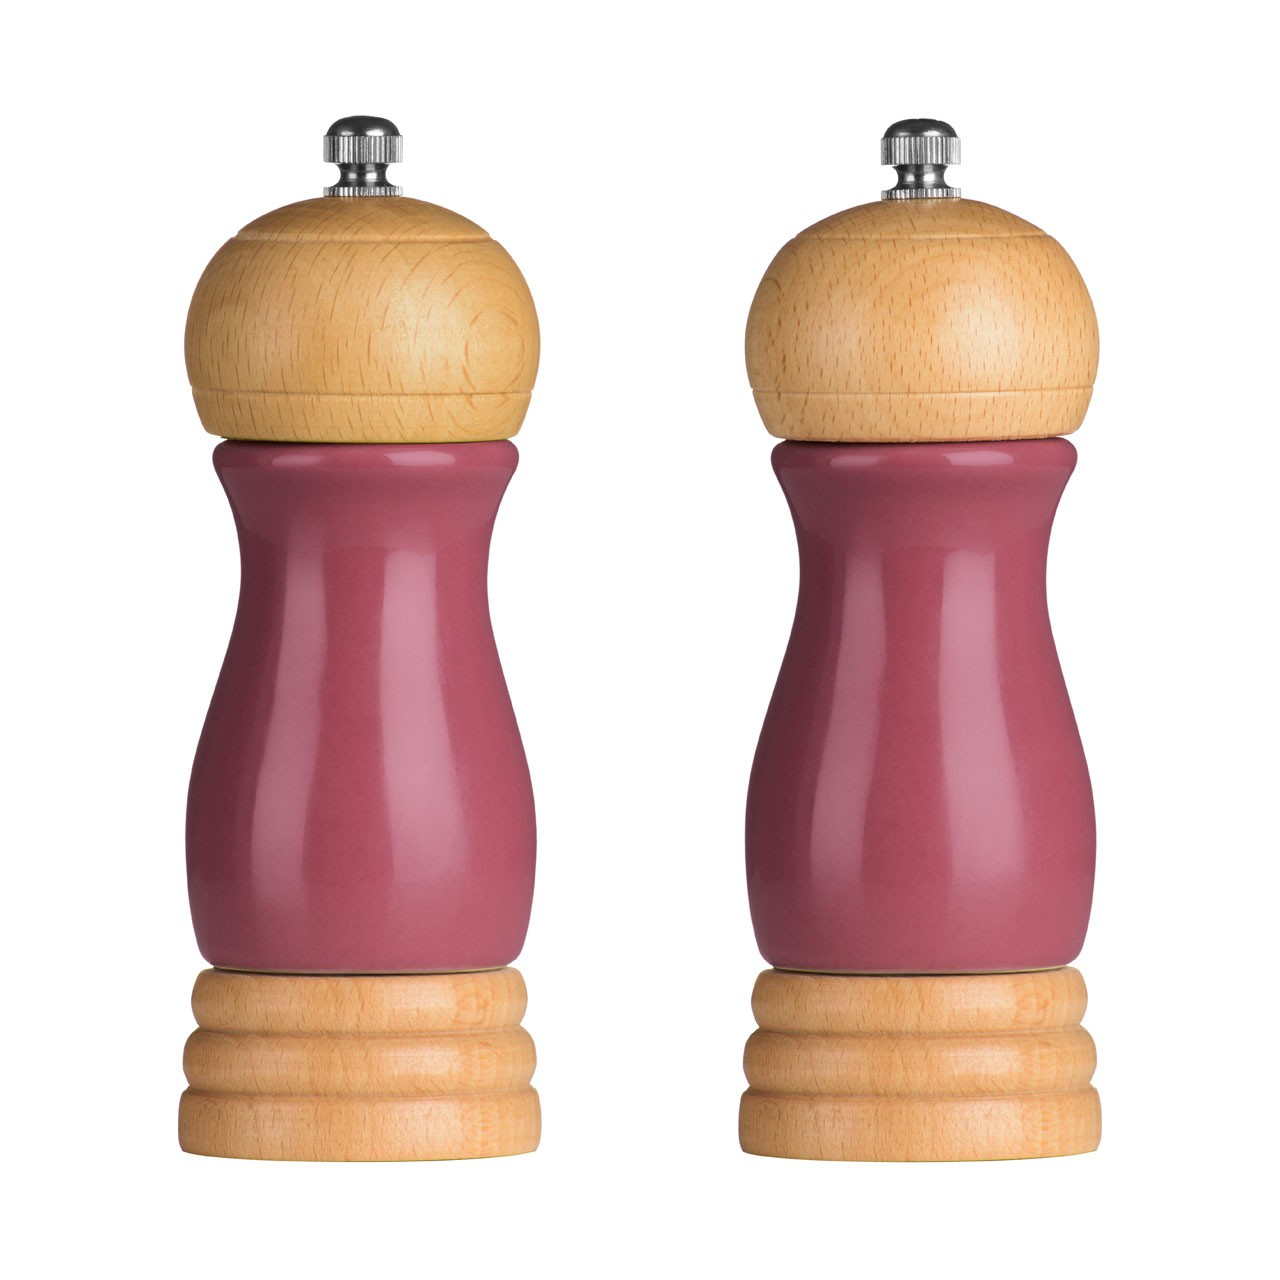 Rubberwood Salt and Pepper Mill Set - Raspberry